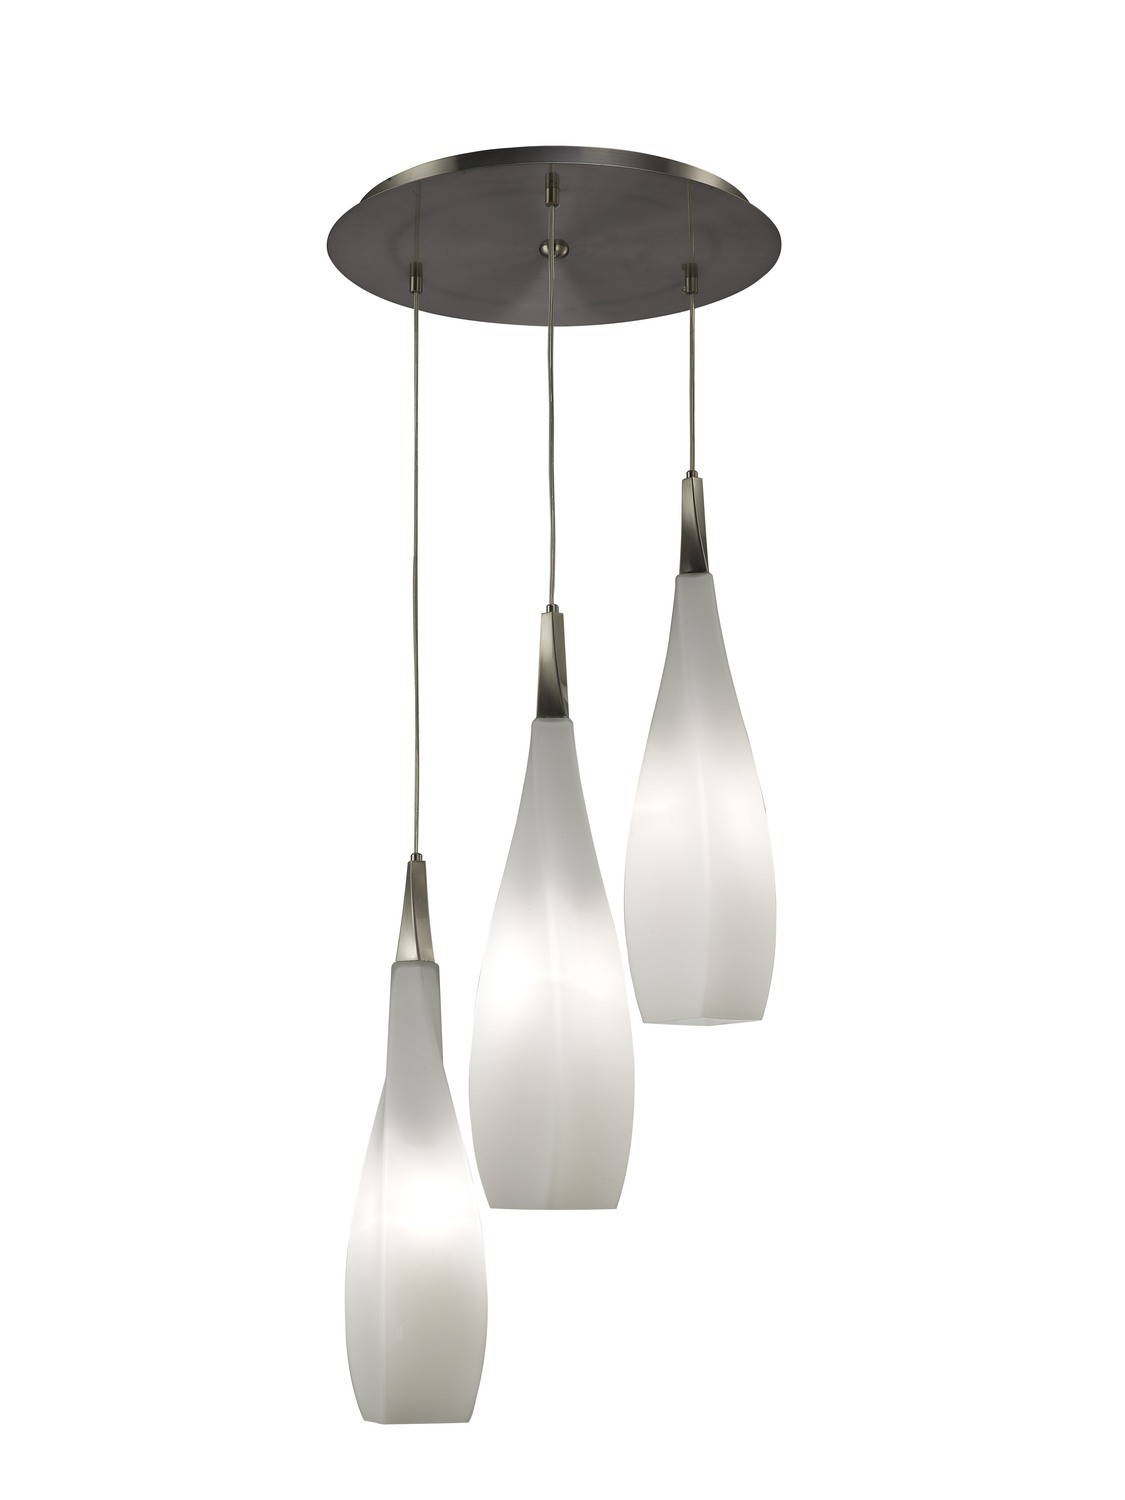 Neo Pendant 3 Light E27 Round, Satin Nickel/Frosted White Glass